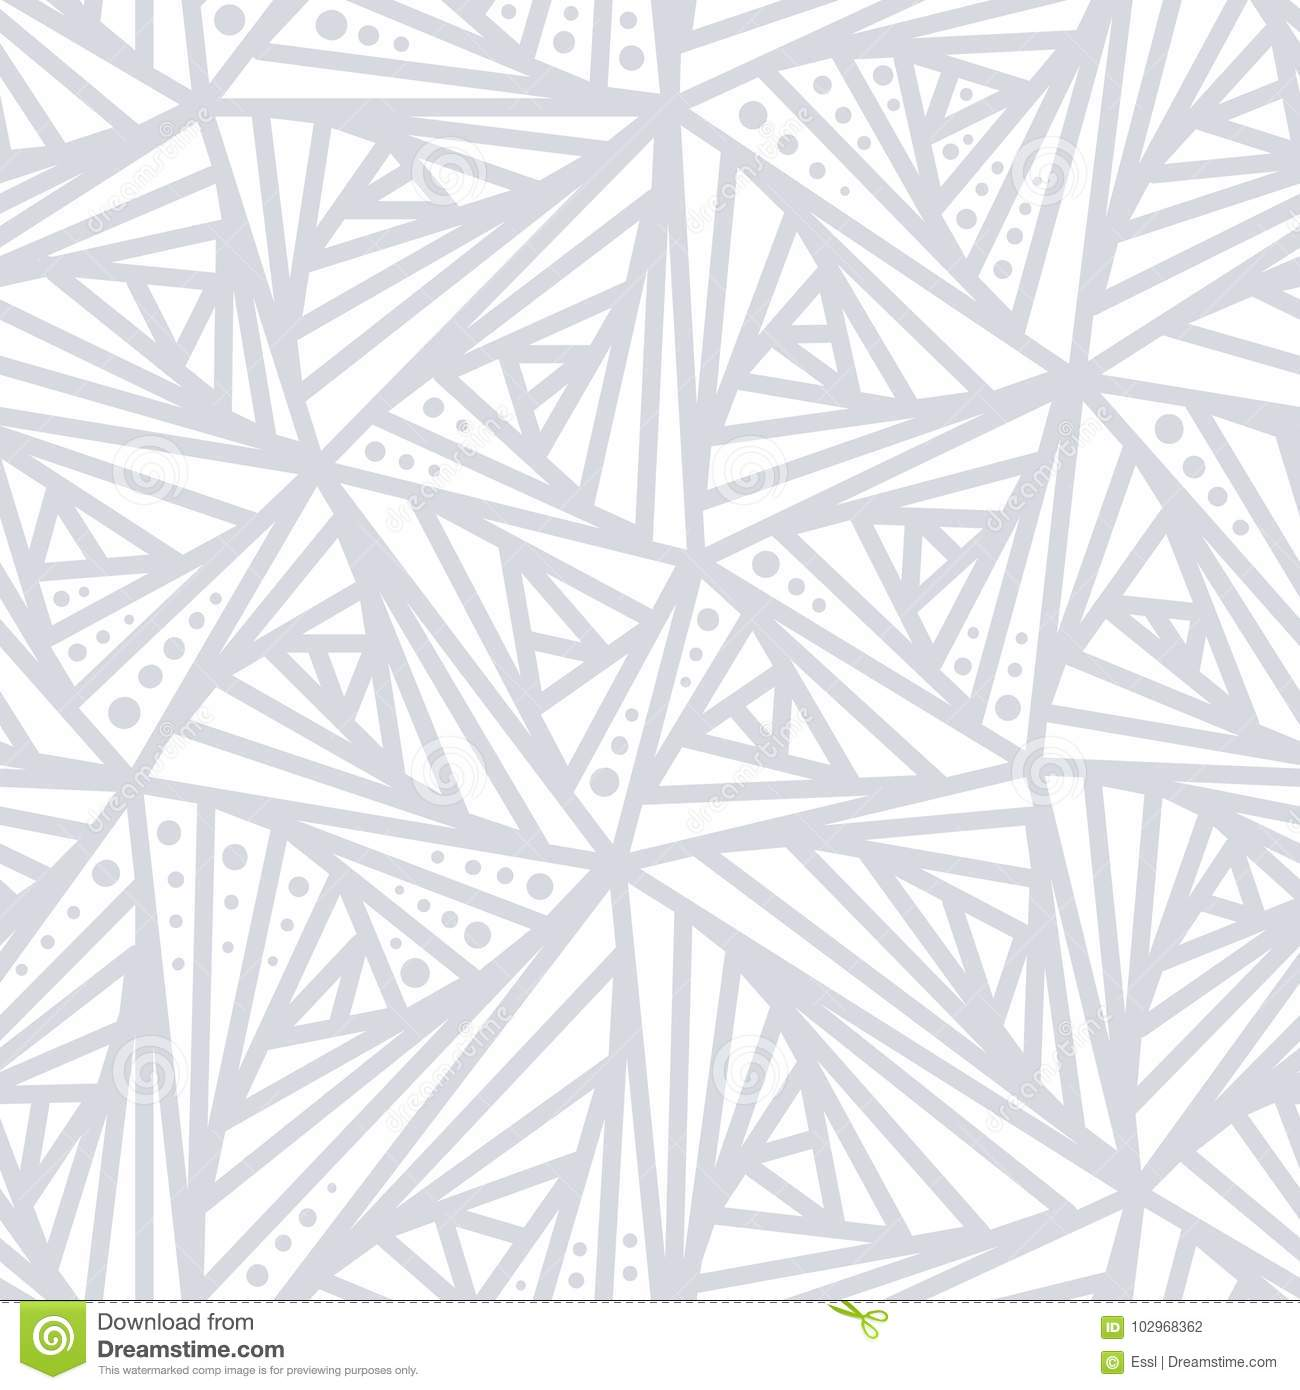 Seamless Light Geometric Pattern. Grey And White Lines And